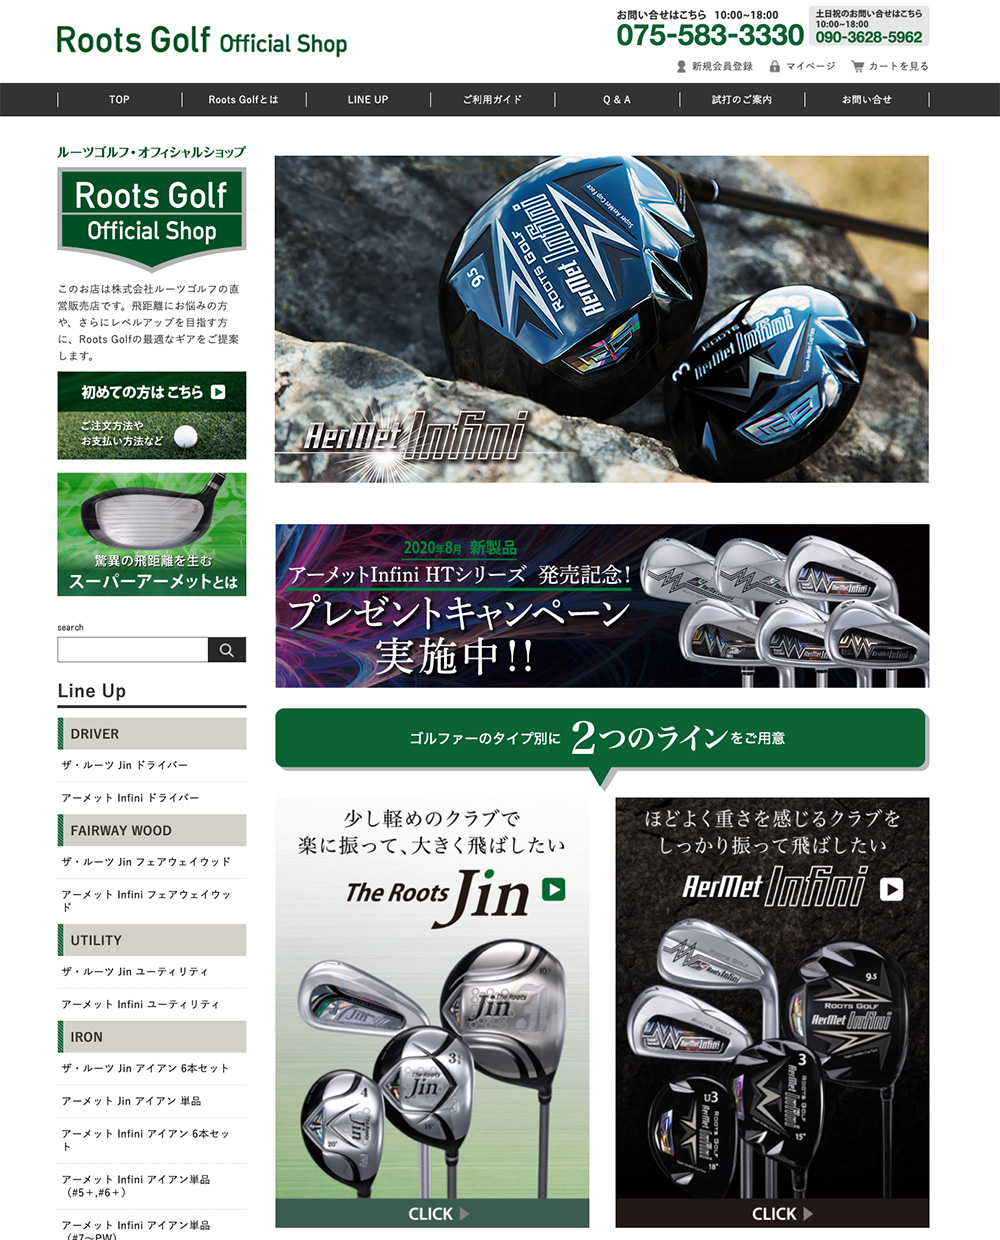 roots golf official shopホームページ